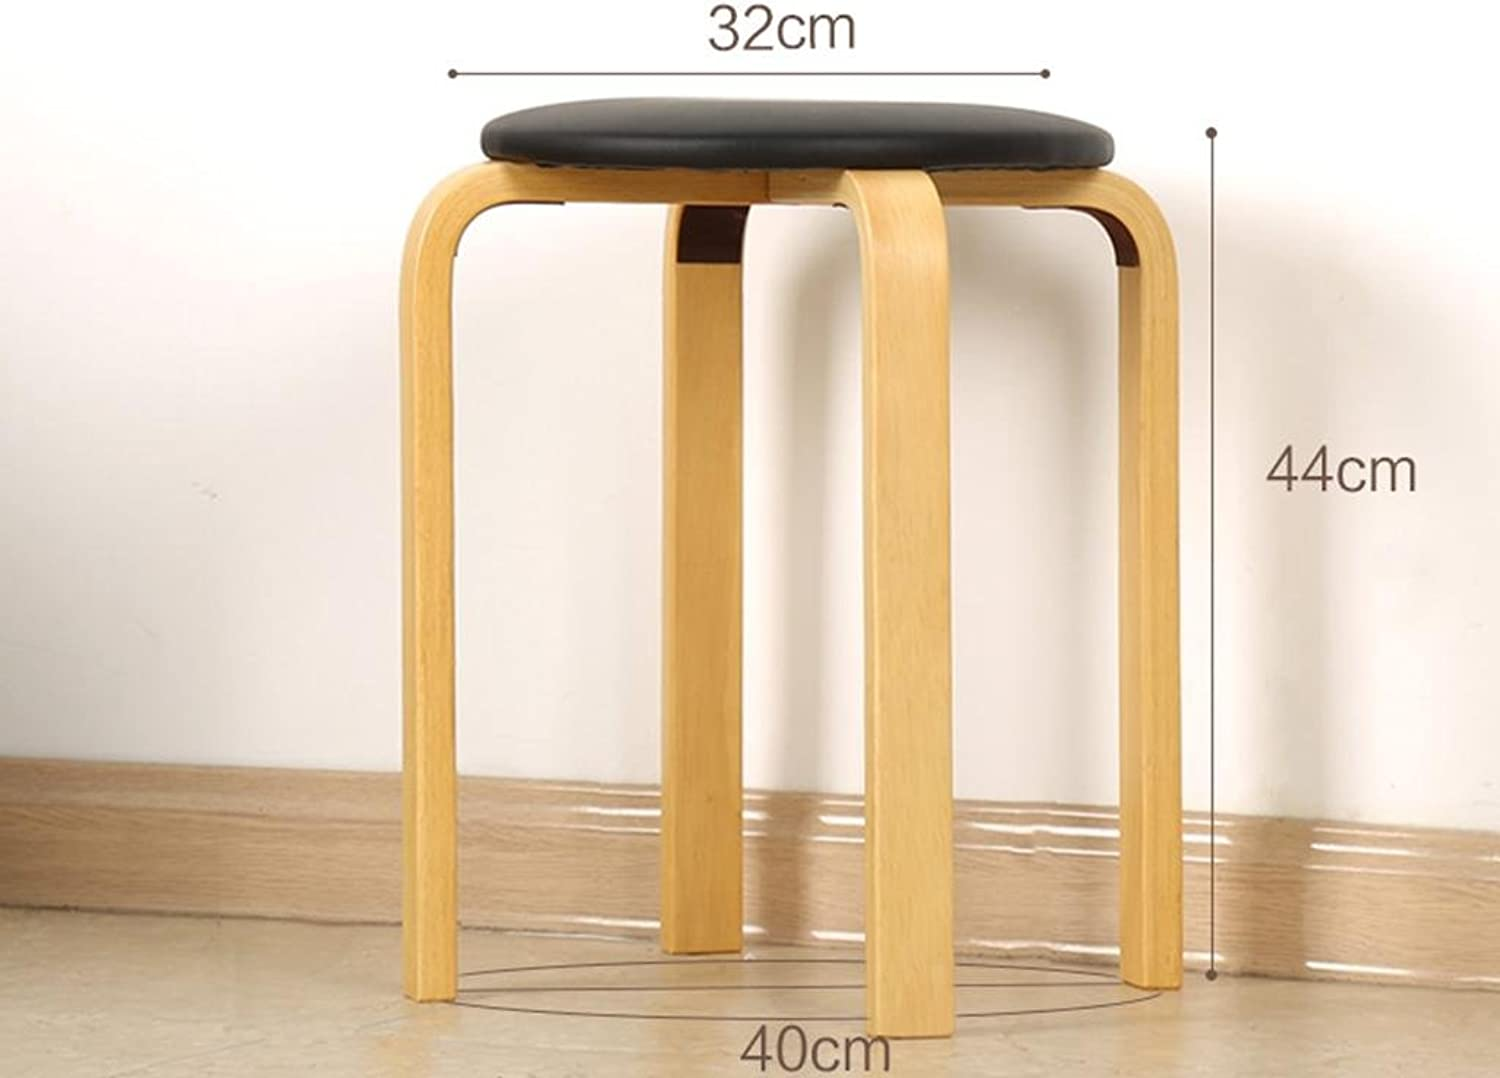 Bar stool,GZD Modern kitchen stools with metal legs High Stool Bar Stools Soft seats and Wooden Seat Breakfast Bar, height 45cm for Kitchen Counter Bar , 8